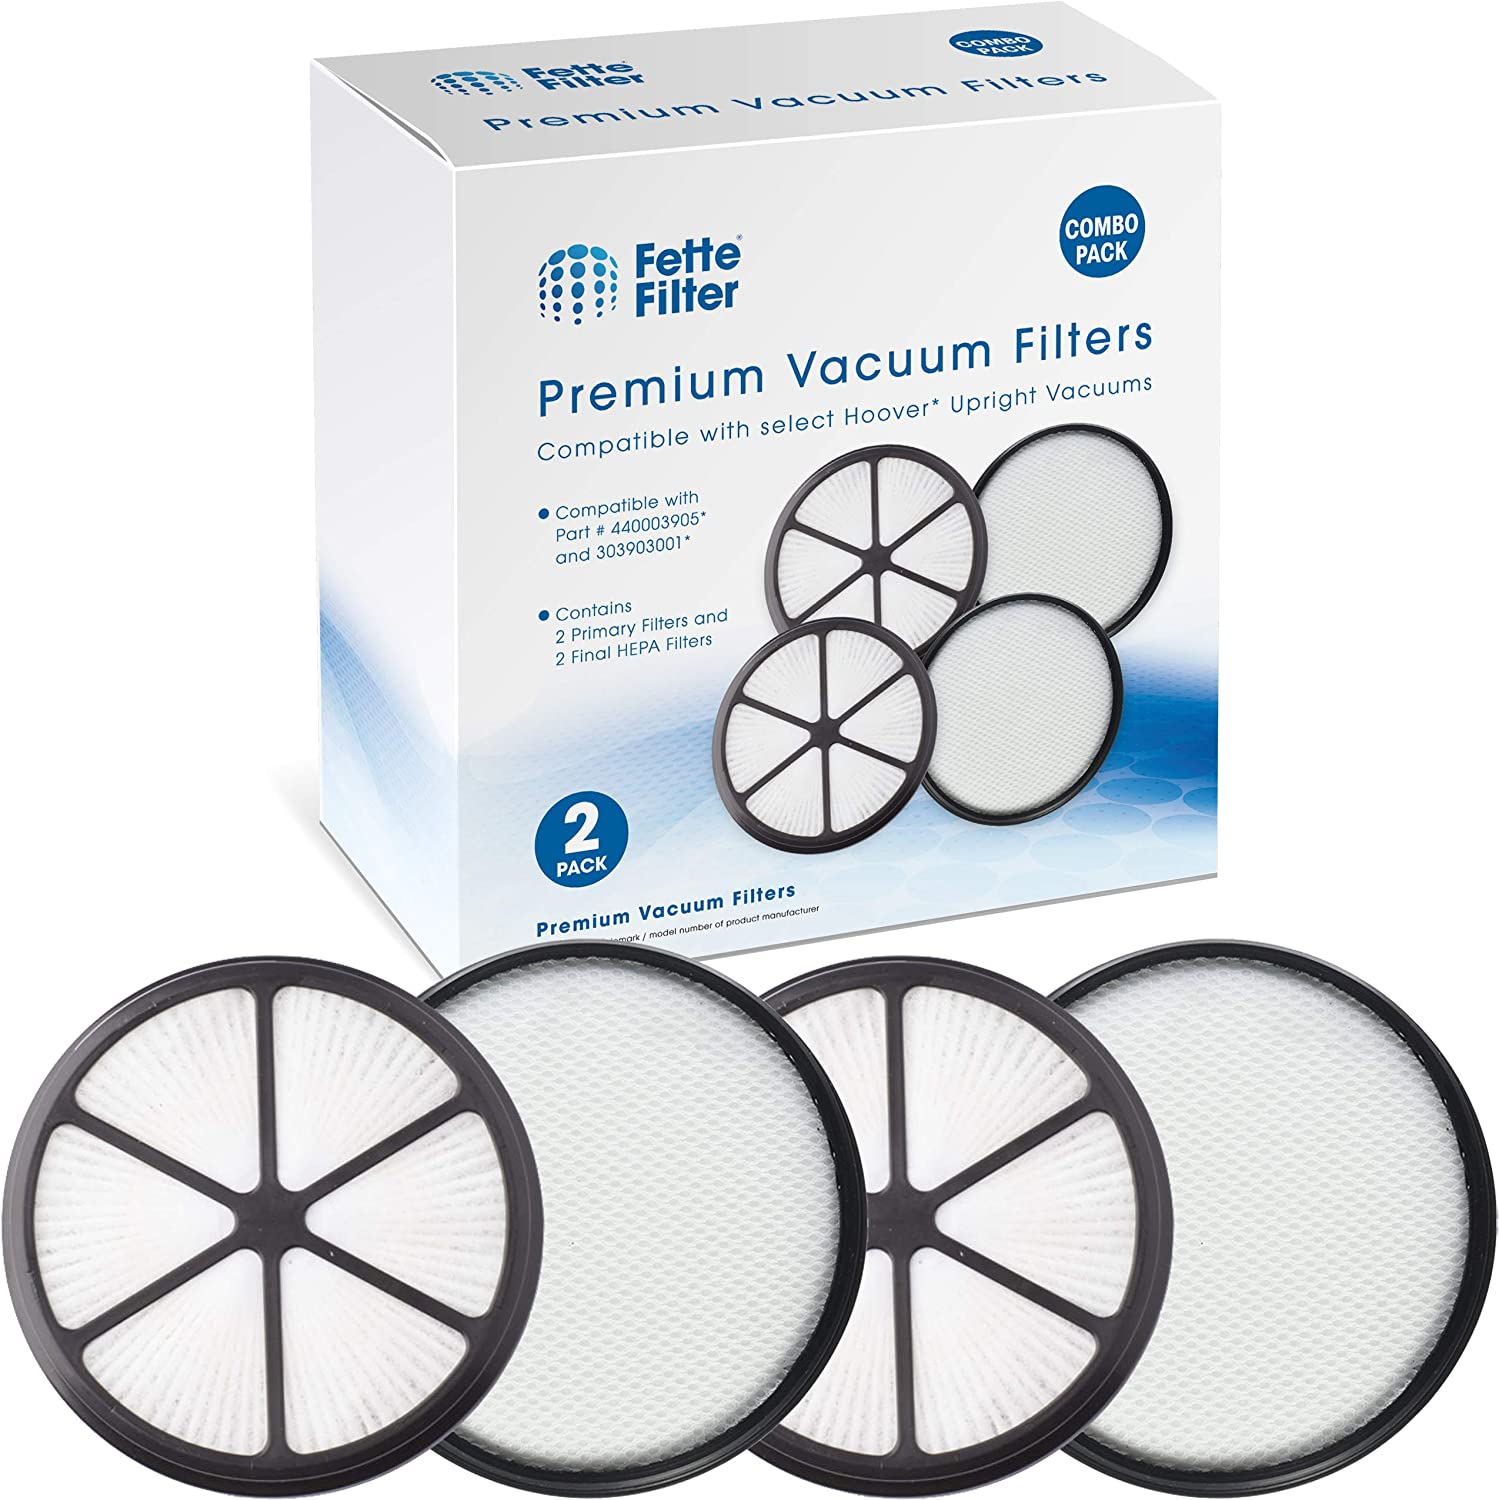 Fette Filter - Vacuum Filter Set Compatible with Hoover UH72400, UH72400, UH72401, UH72402, UH72405, UH72406, UH72409. Compare to Part #440003905 & 303903001 (4 Pieces)